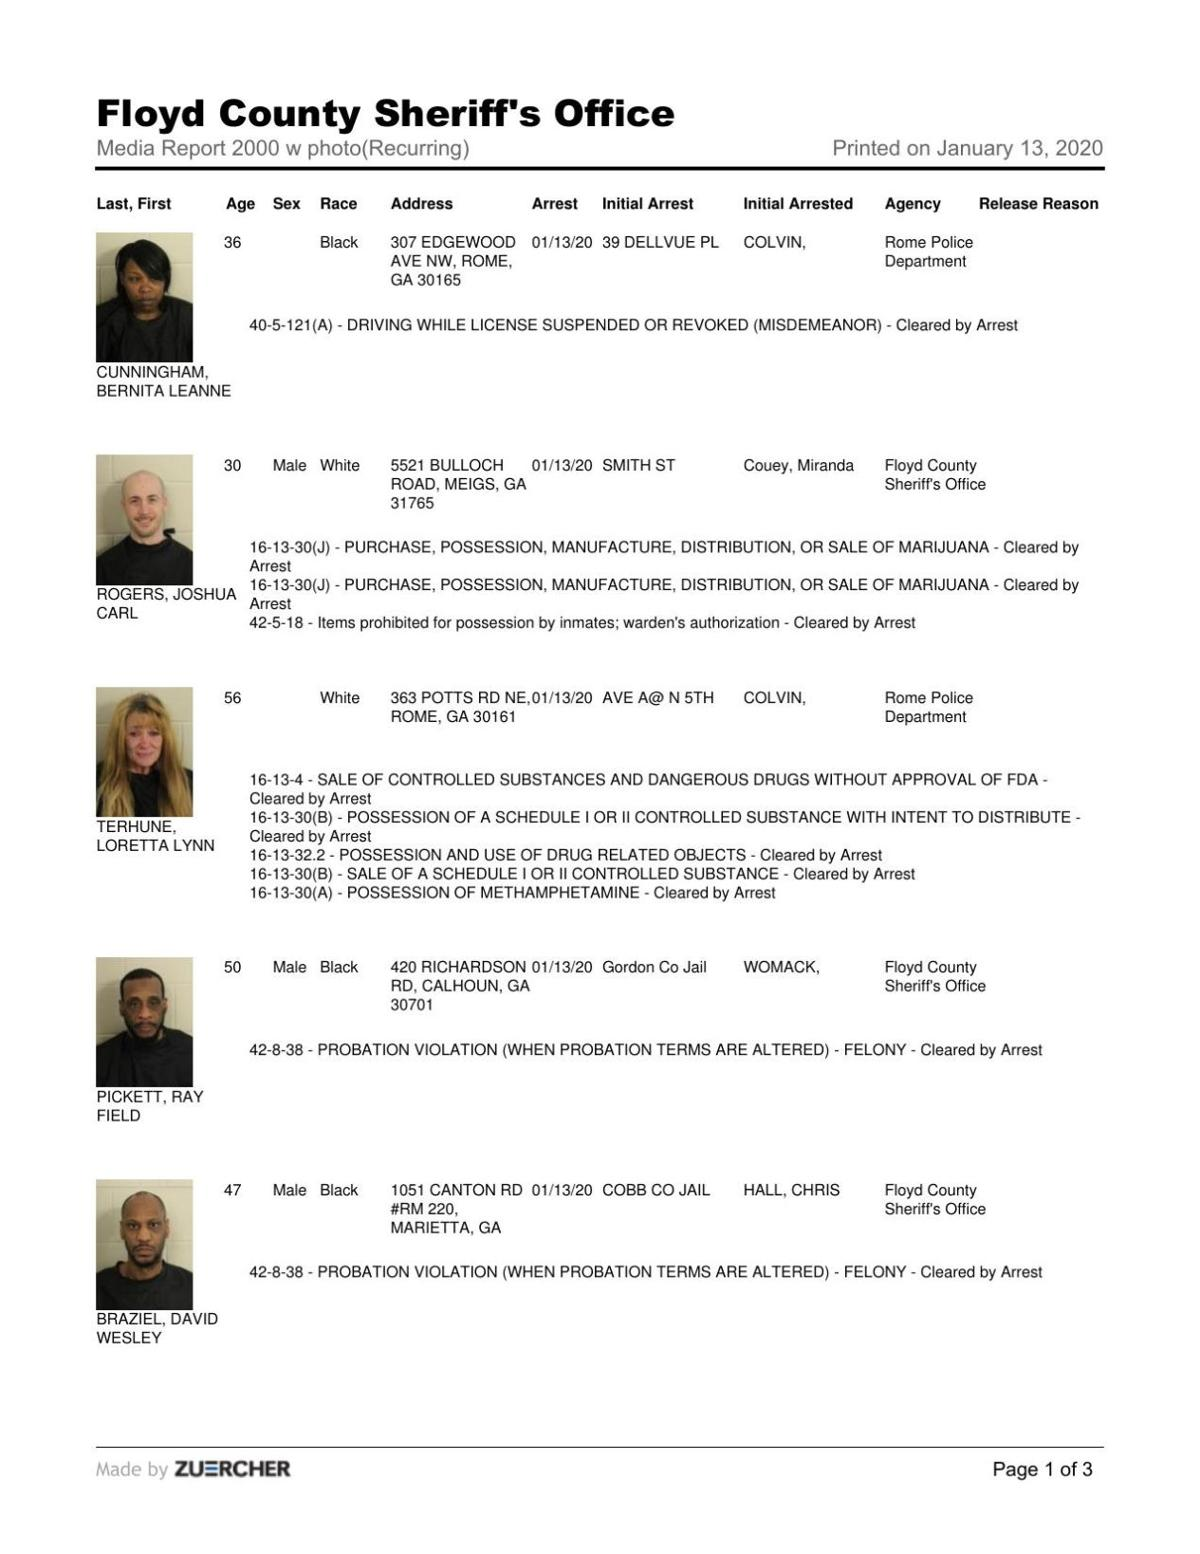 Floyd County Jail report for Monday, Jan. 13, 8 p.m.